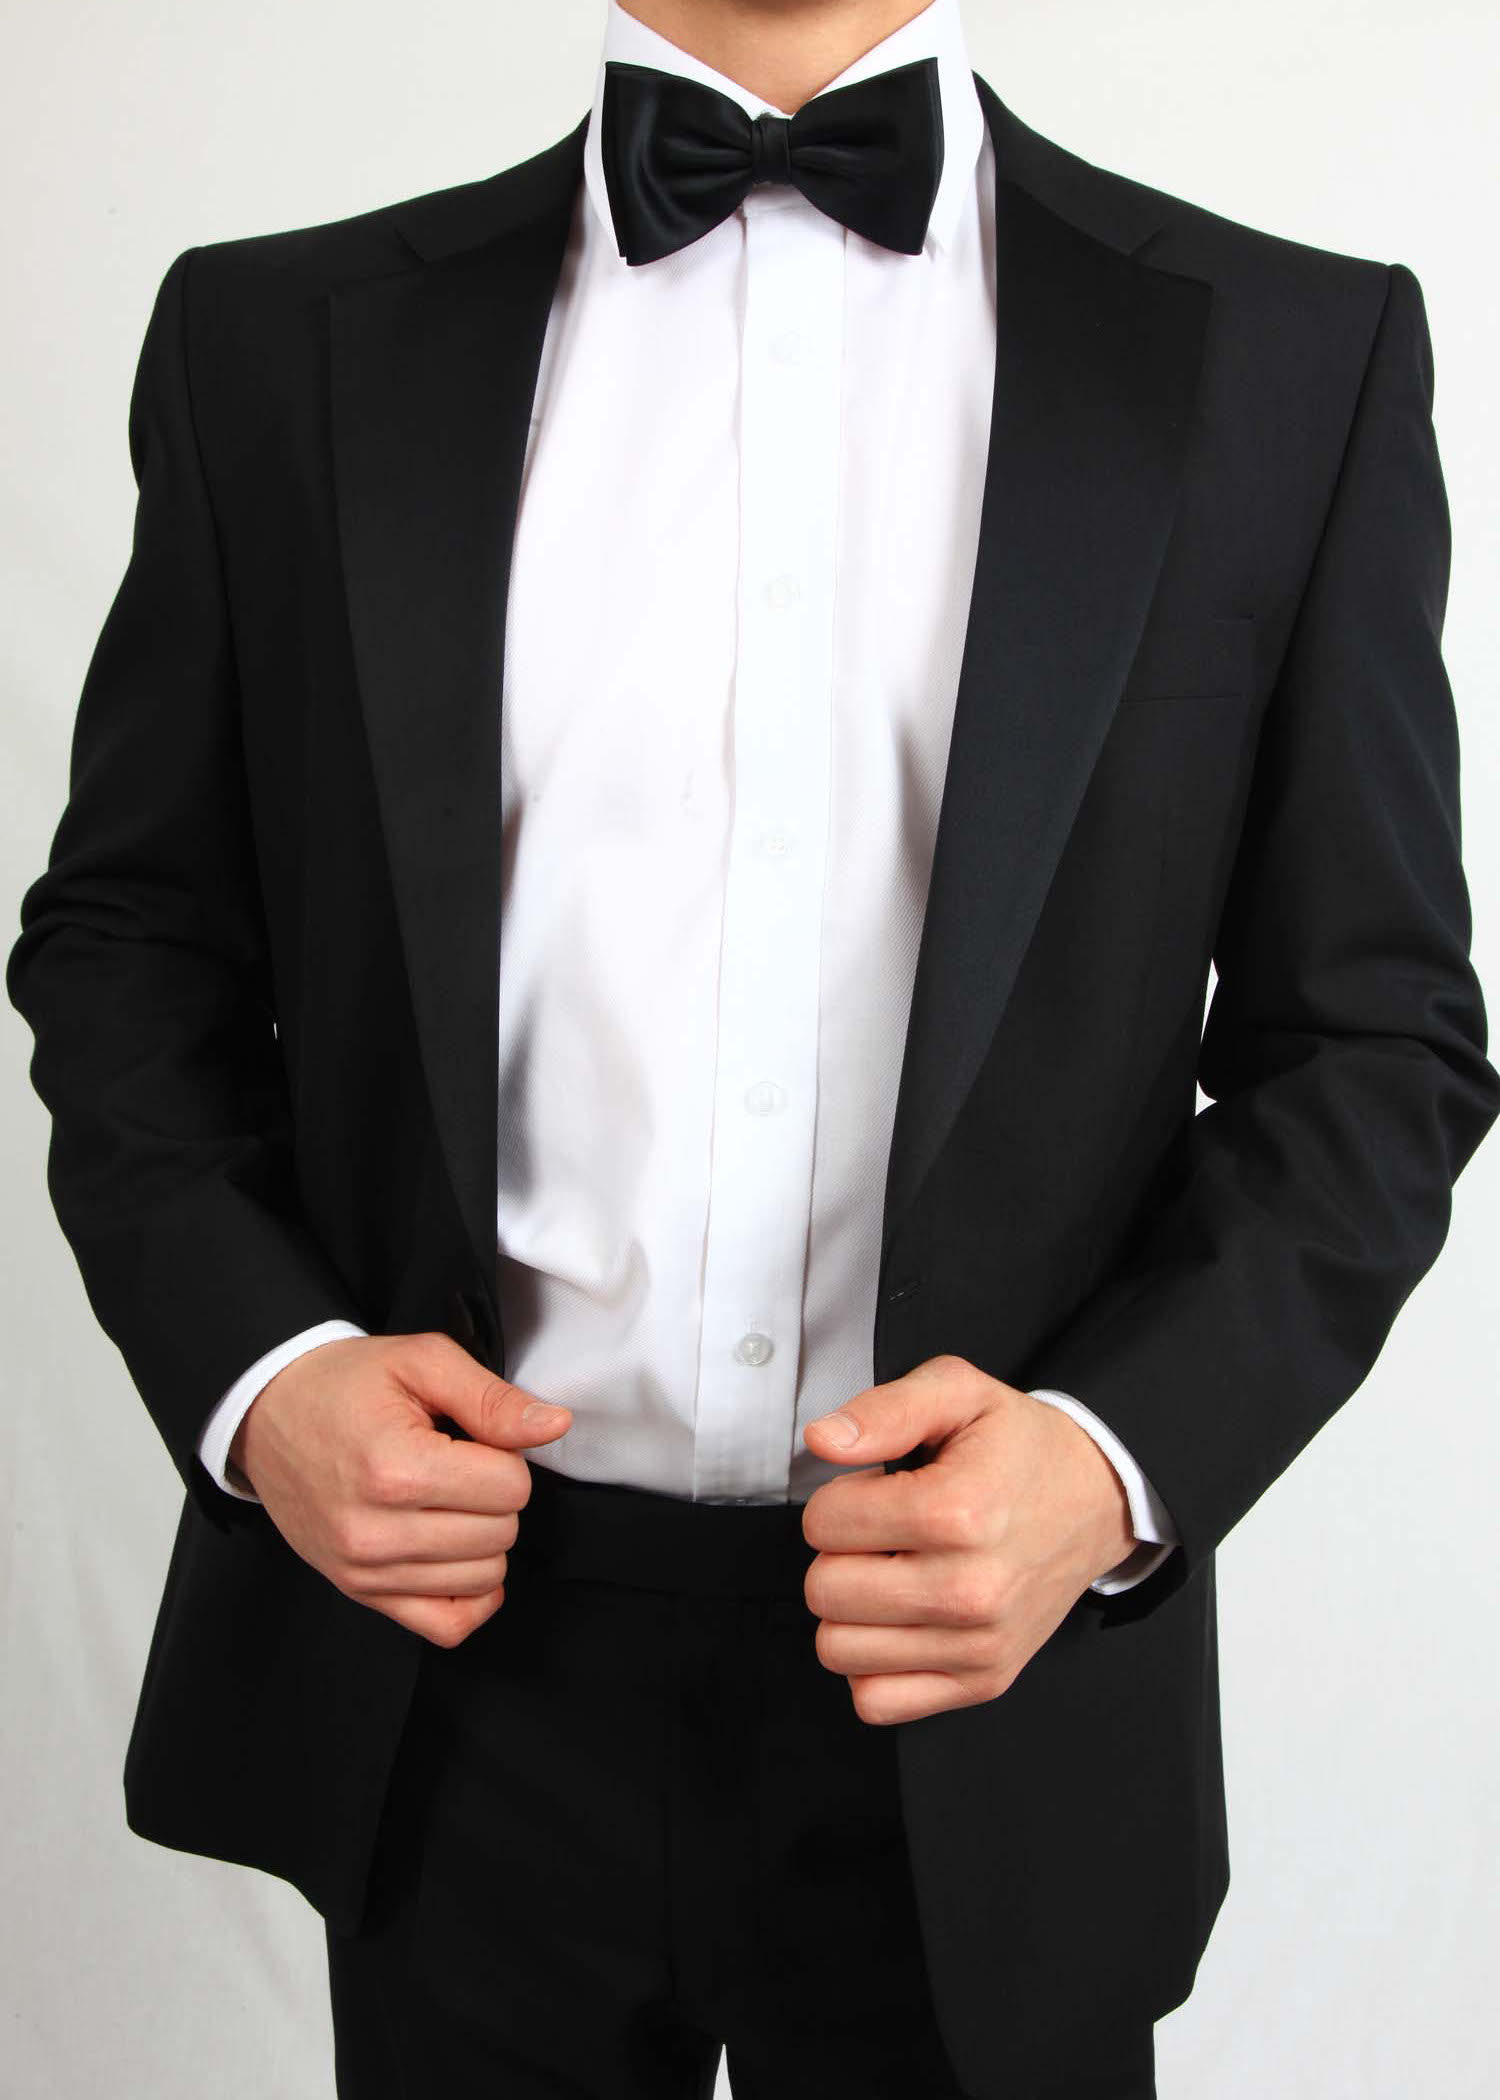 Mix and Match Scott Tuxedo with FREE BOW TIE